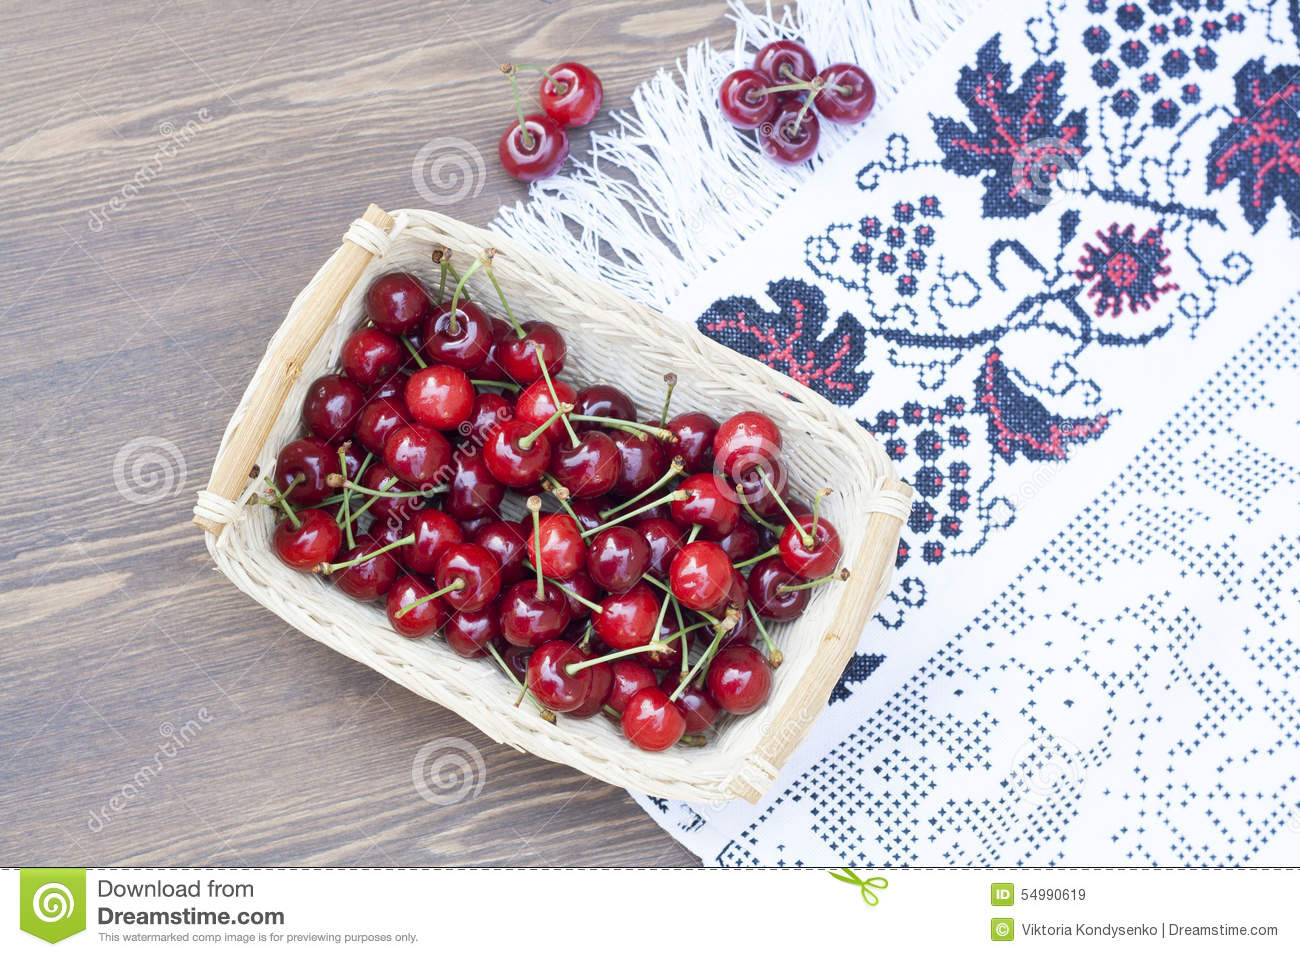 Fresh cherries on embroidered towel